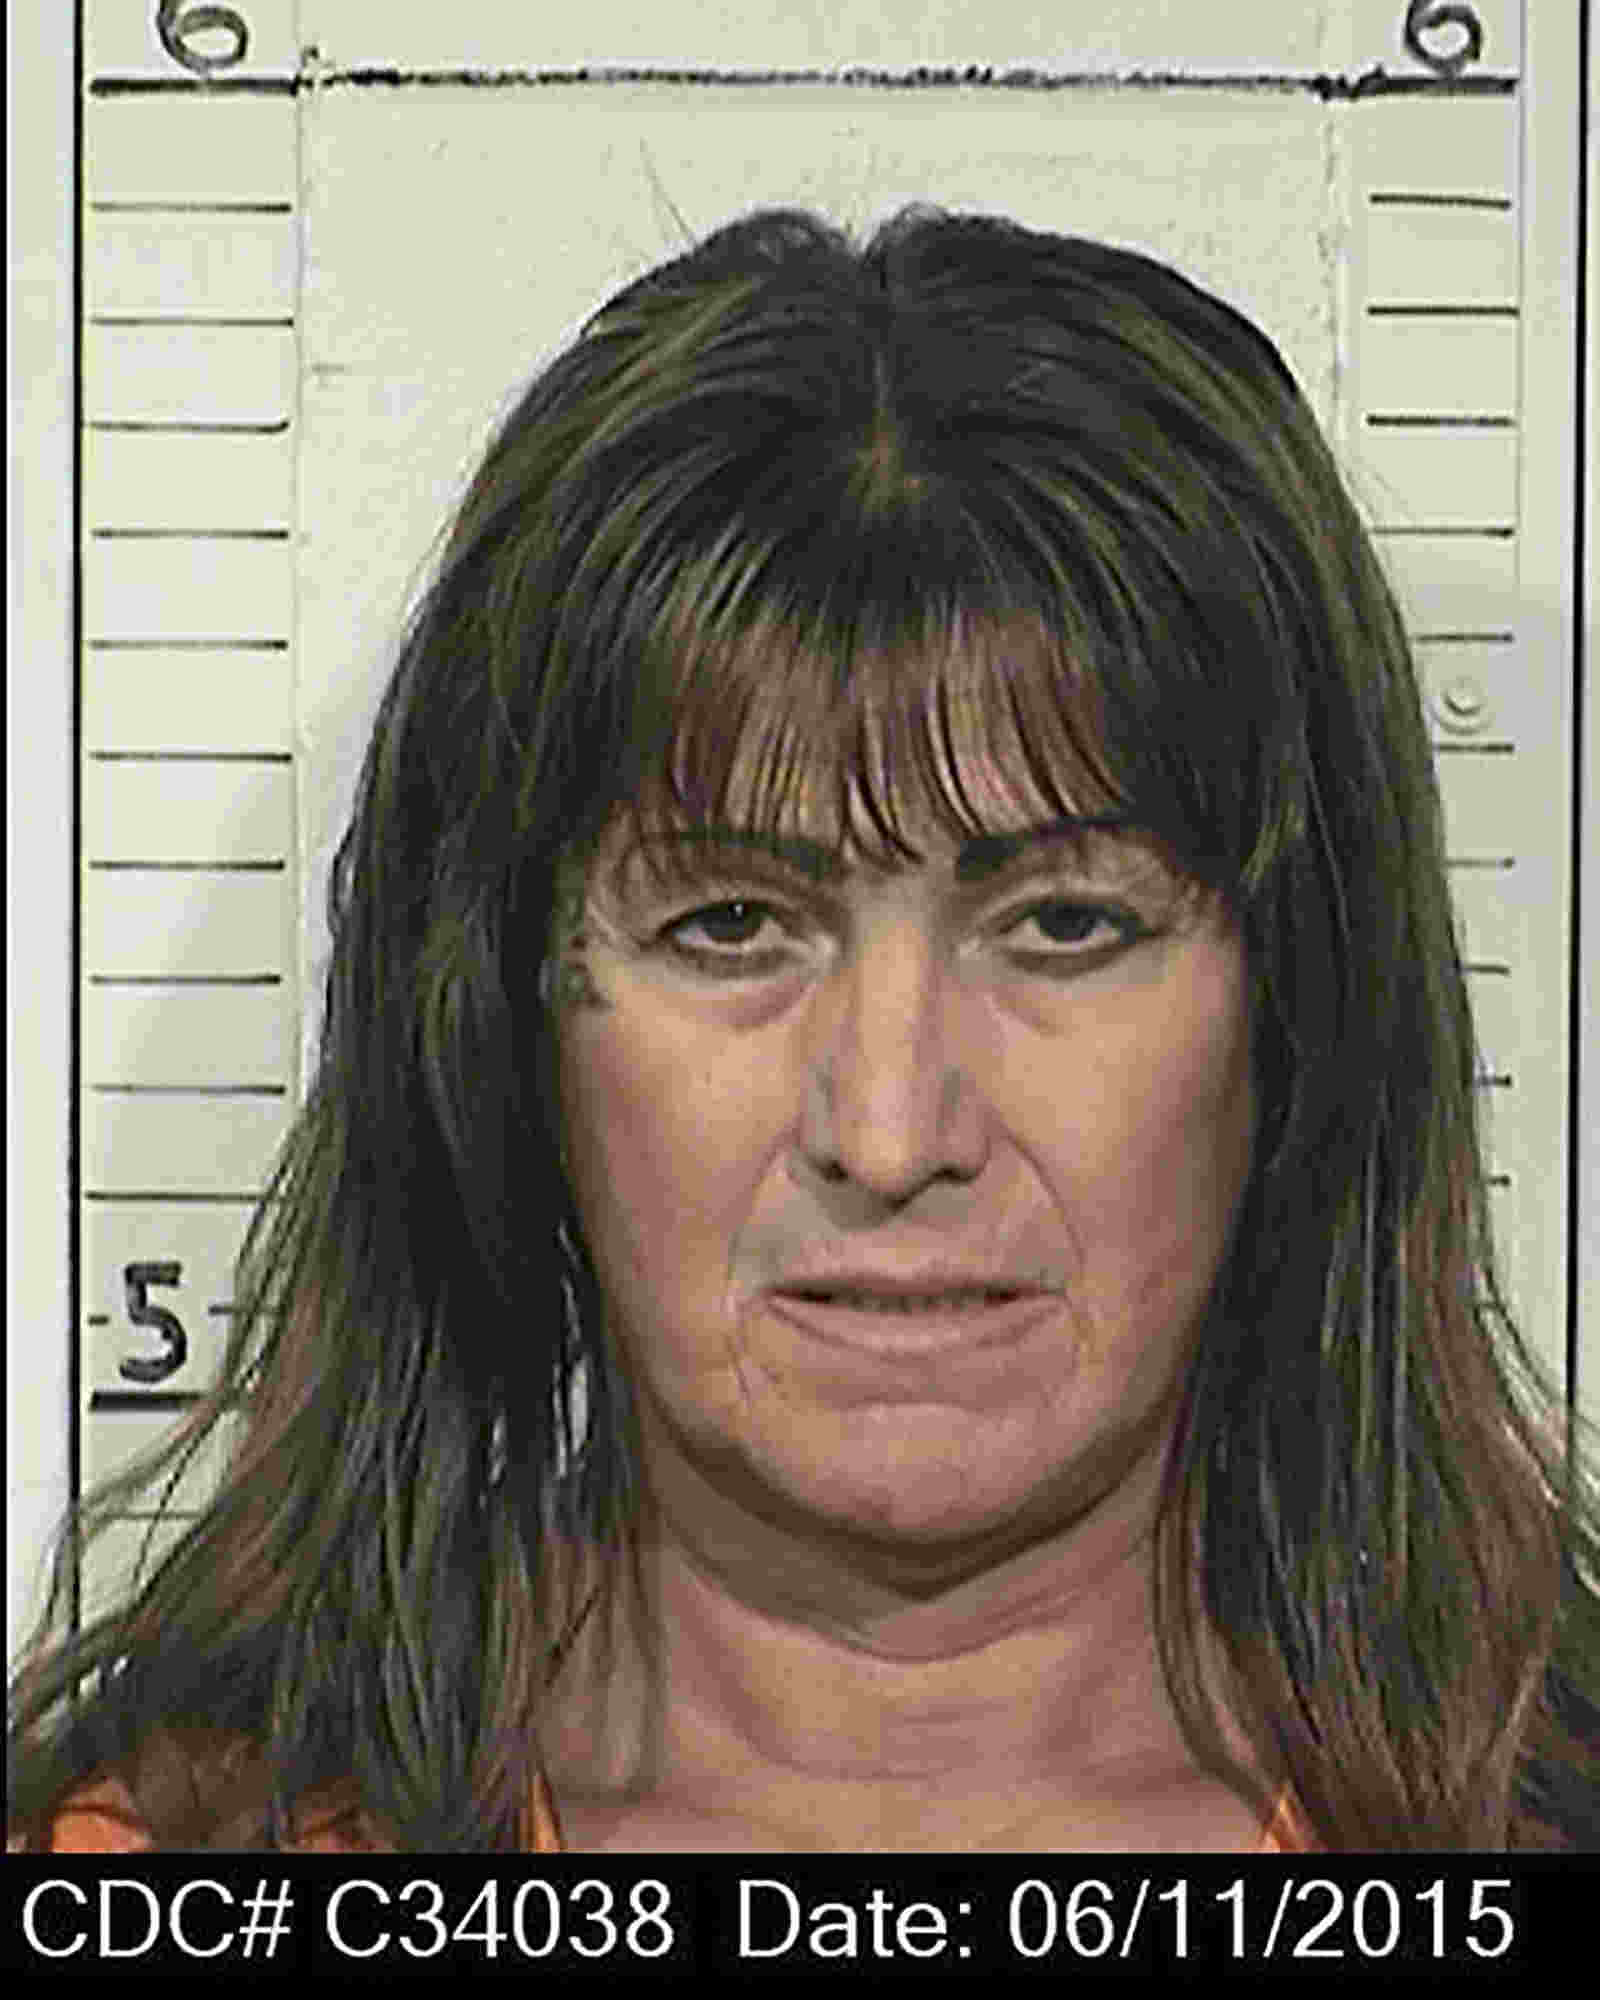 California inmate Shiloh Heavenly Quine is seen in this undated image.